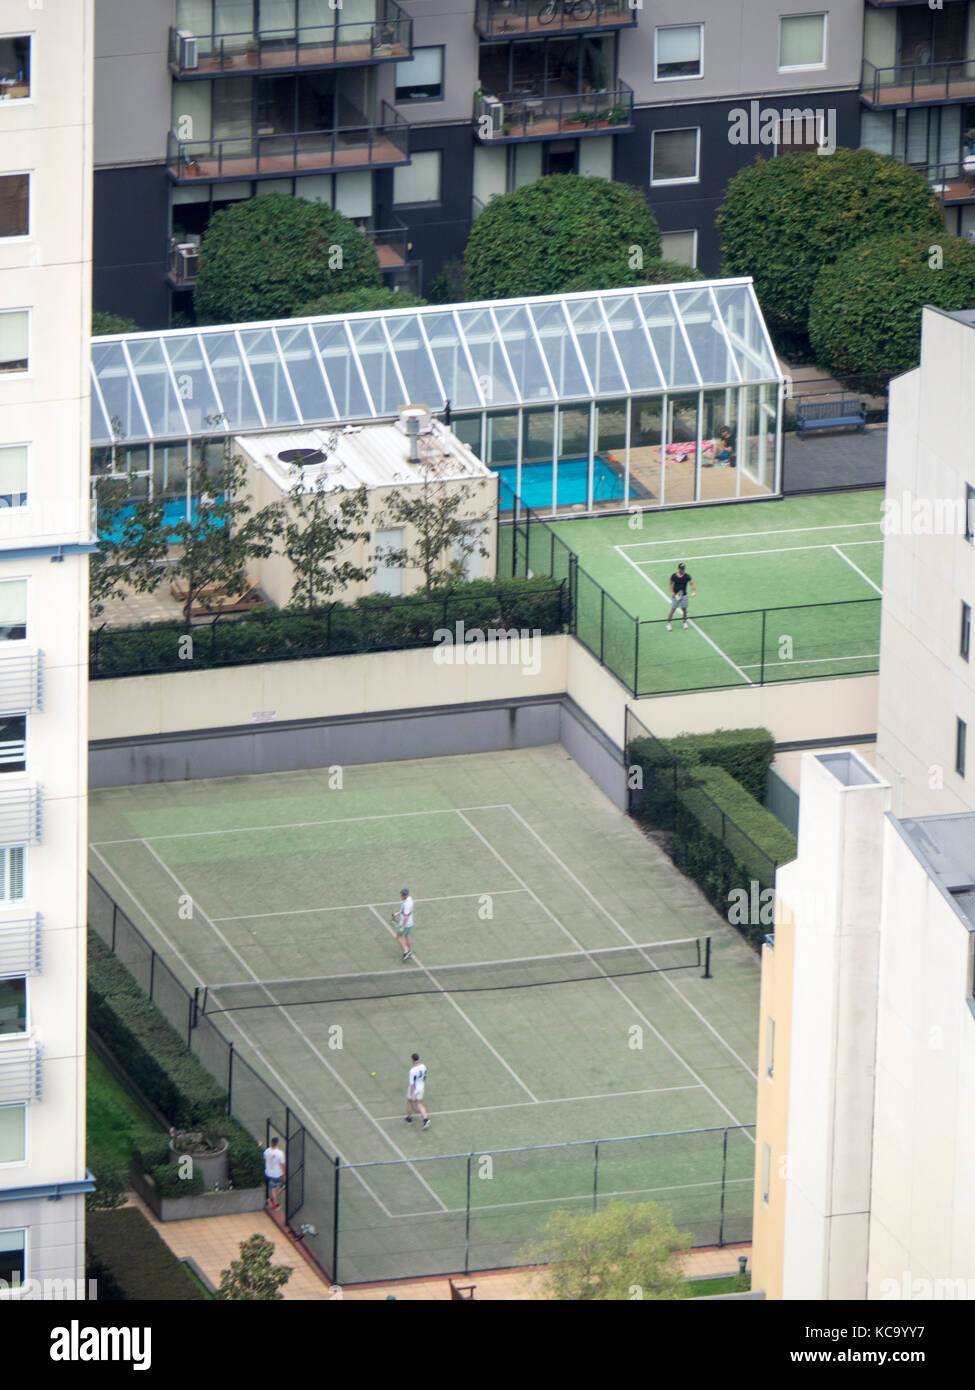 Two tennis courts located in high rise housing developments in central central Melbourne, Victoria, Australian - Stock Image